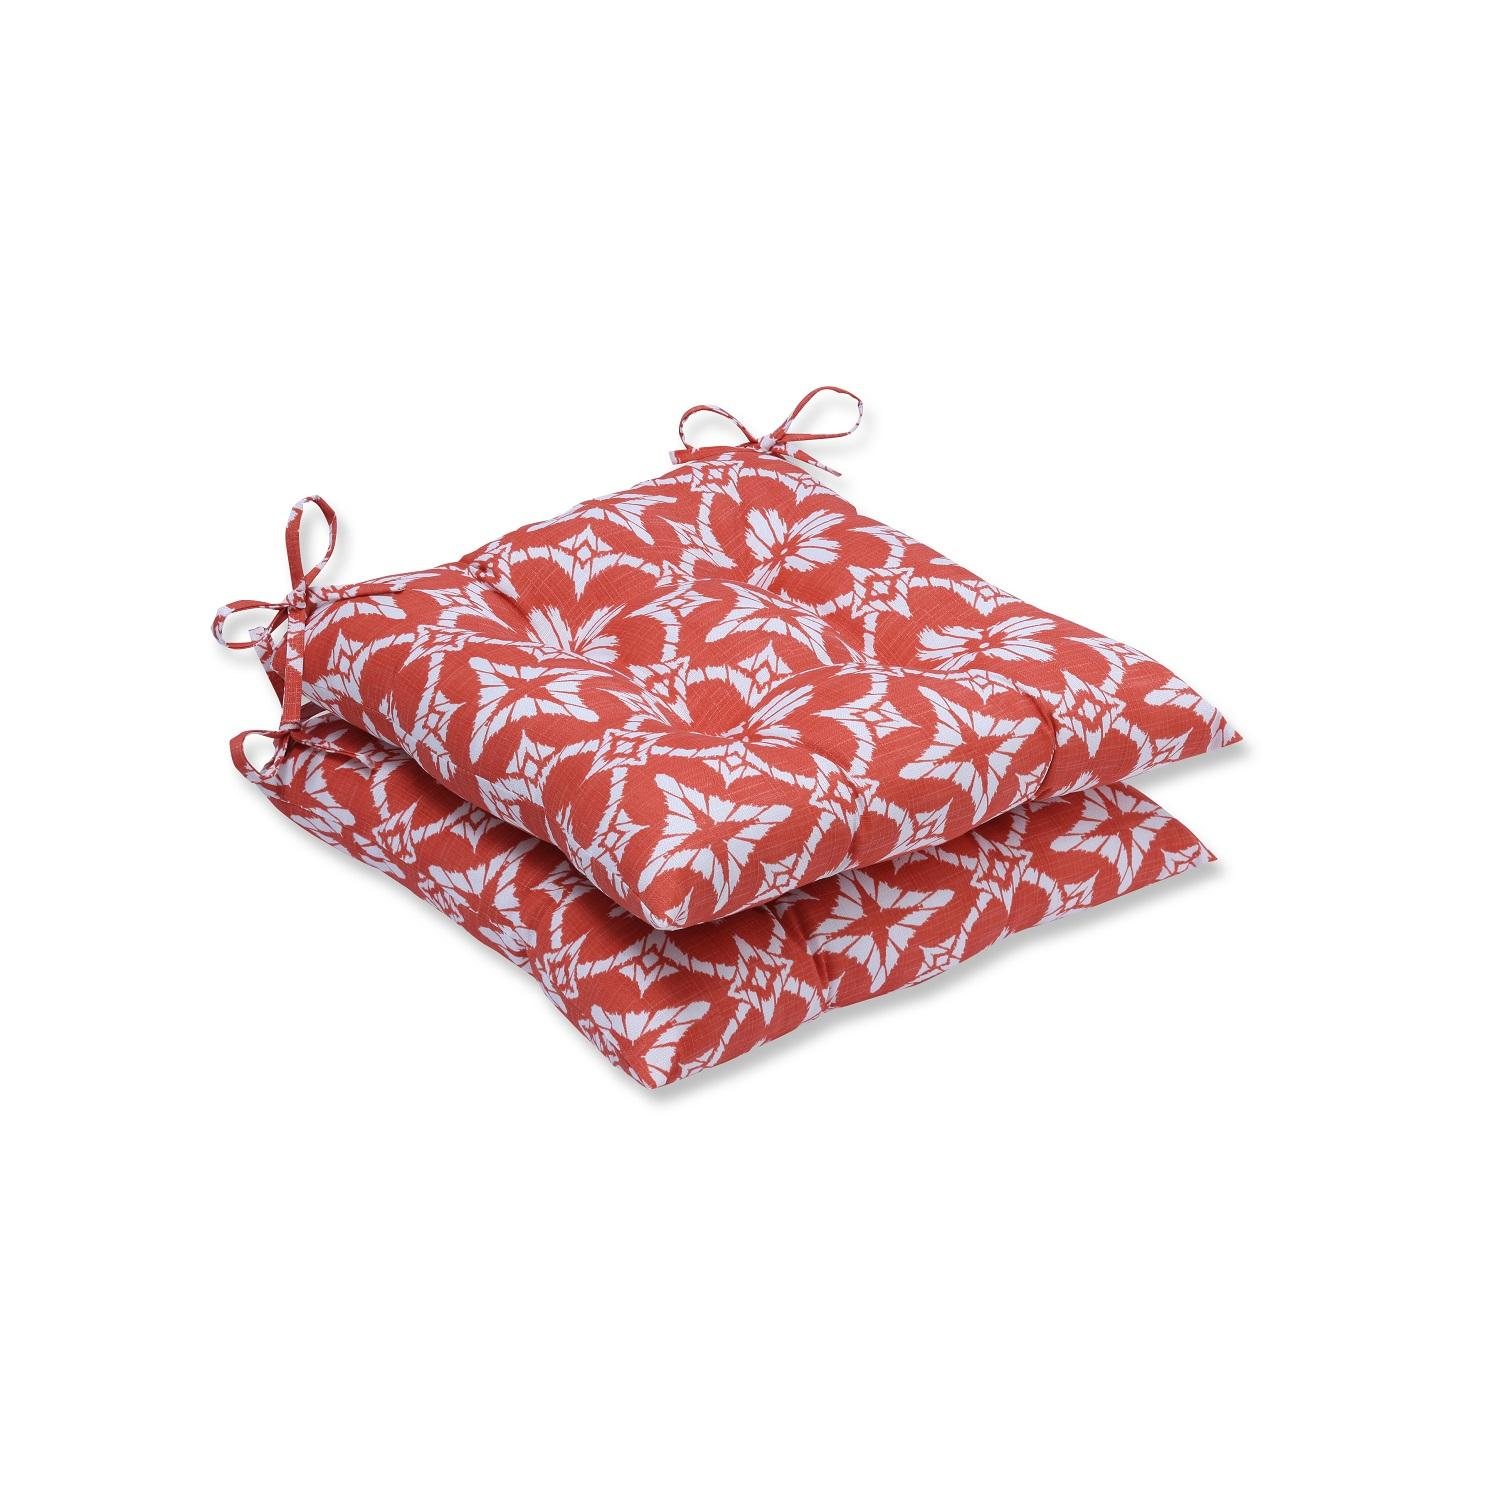 CC Home Set of Two Persimmon Orange and Cotton White Ikat...